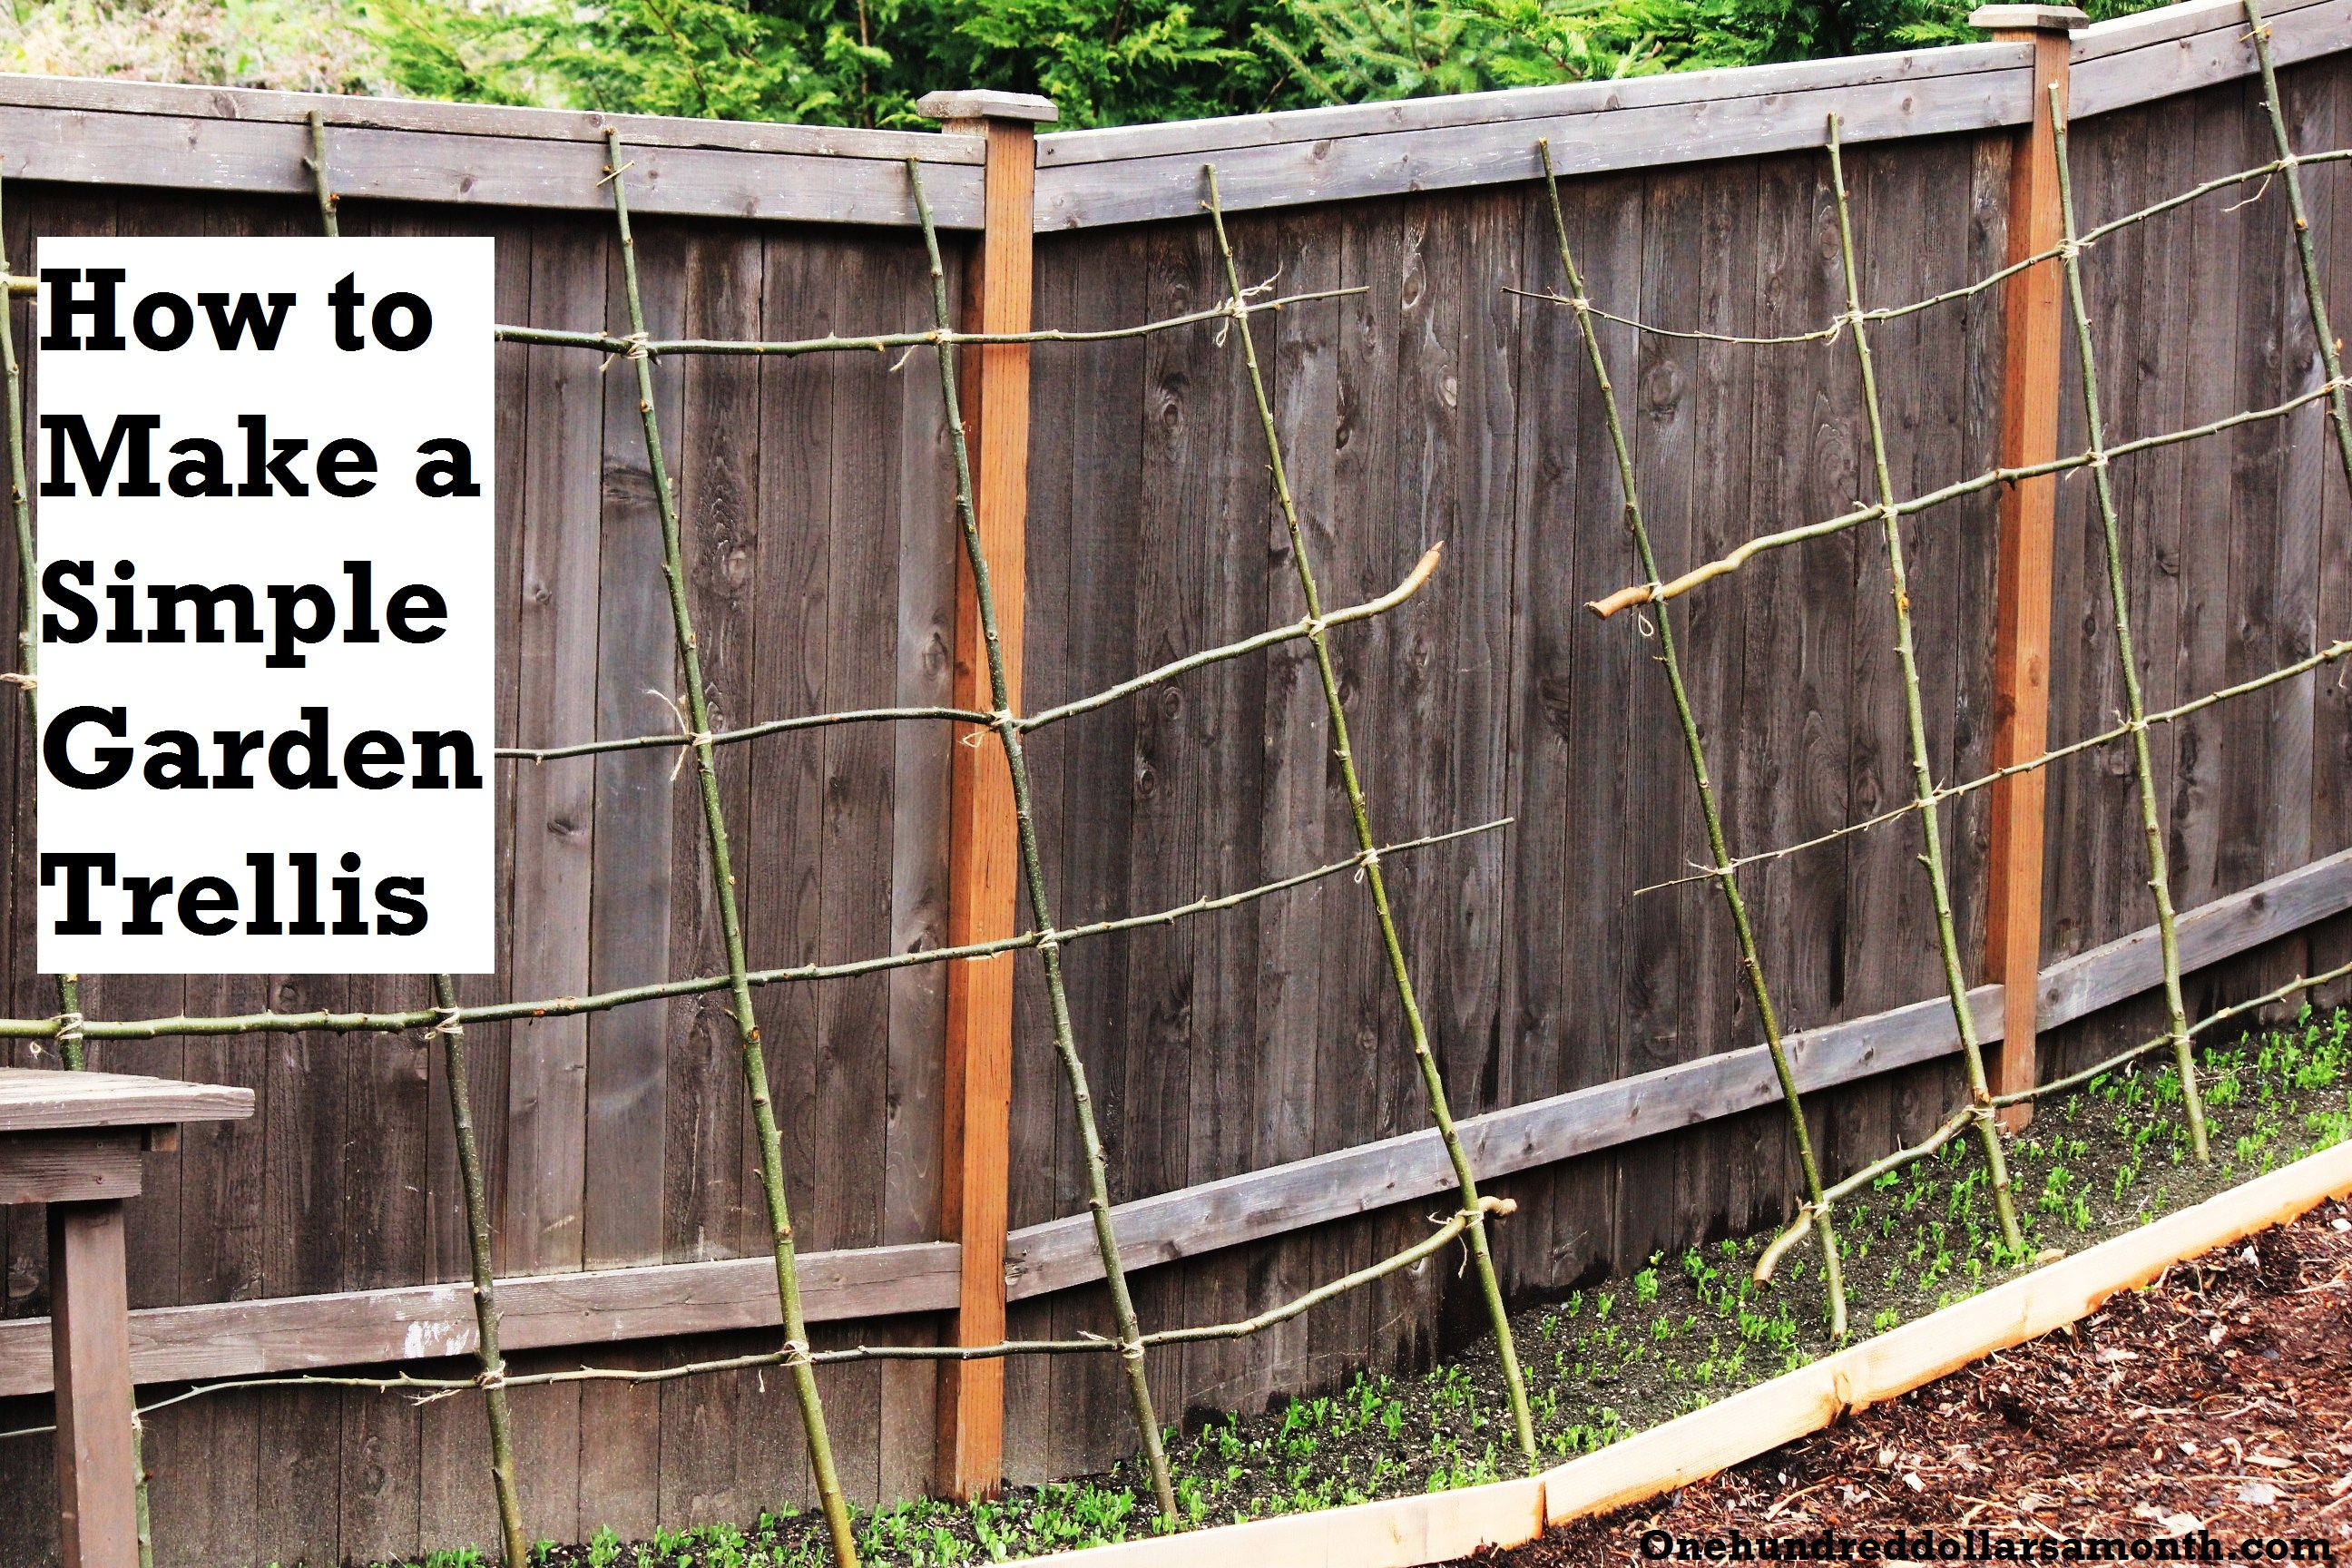 How to Make a Rustic Pea or Bean Trellis Out of Sticks e Hundred